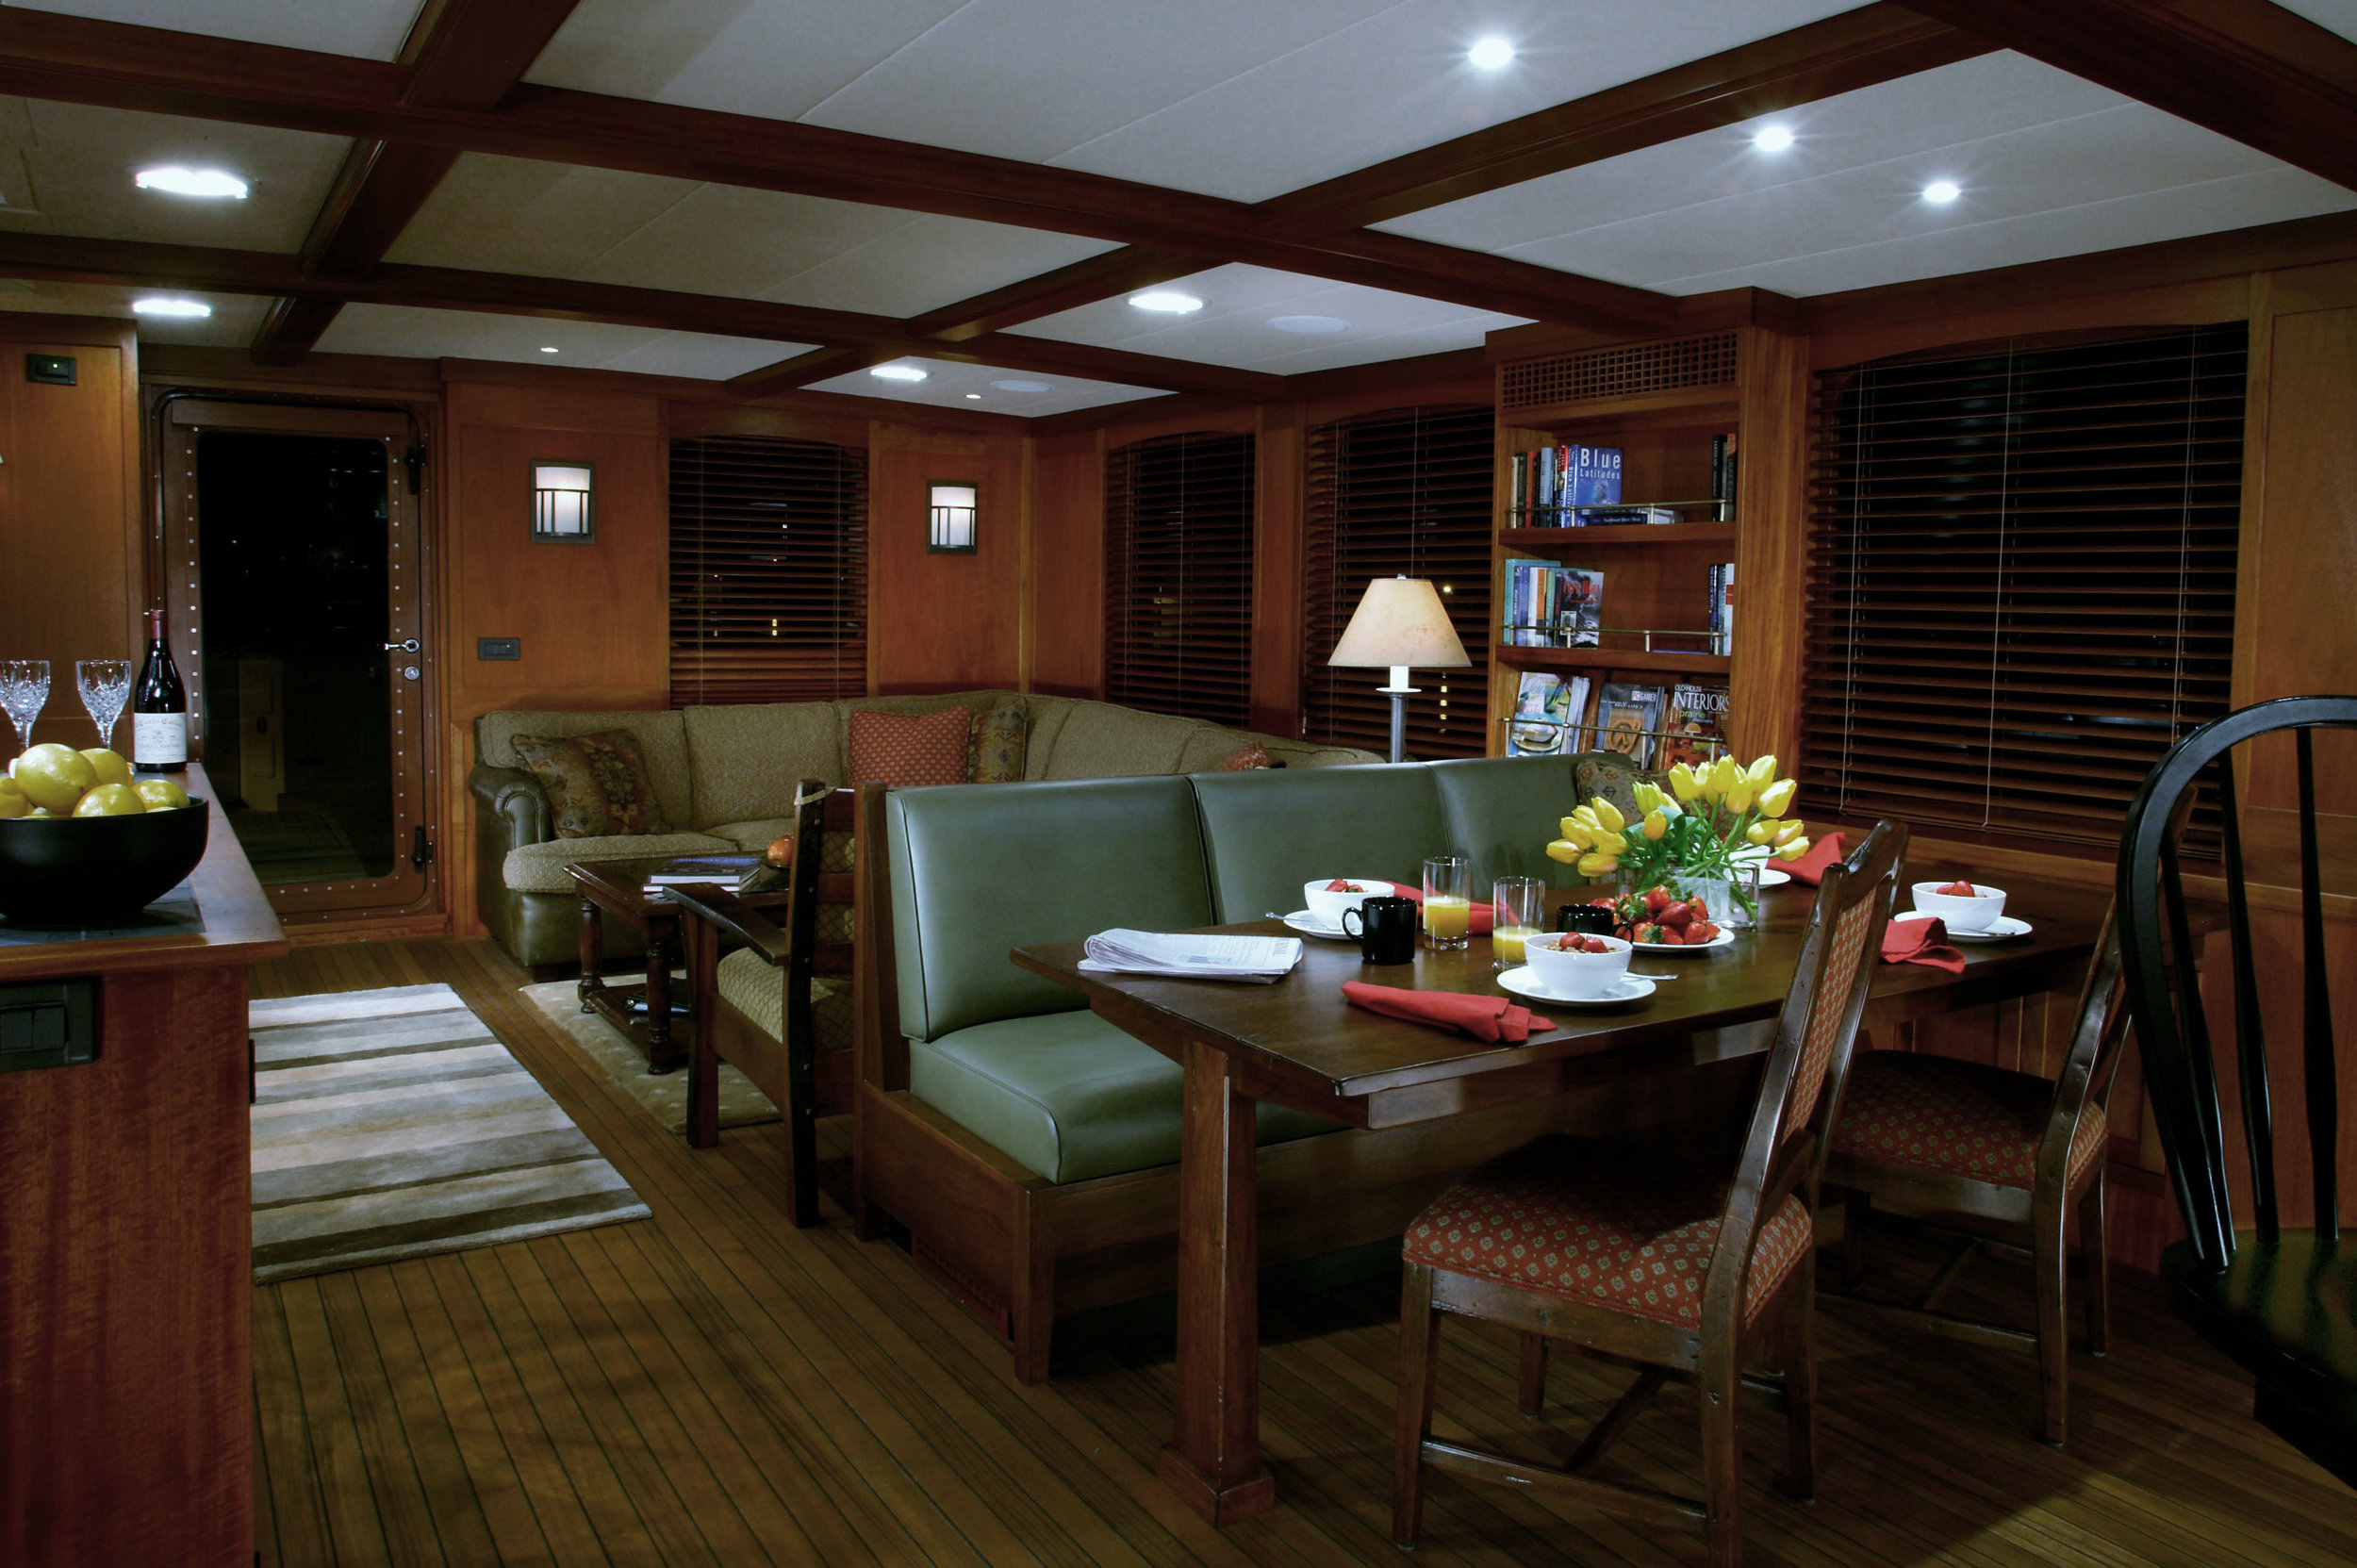 Meander dining area aft pic ps2 1MB.jpg